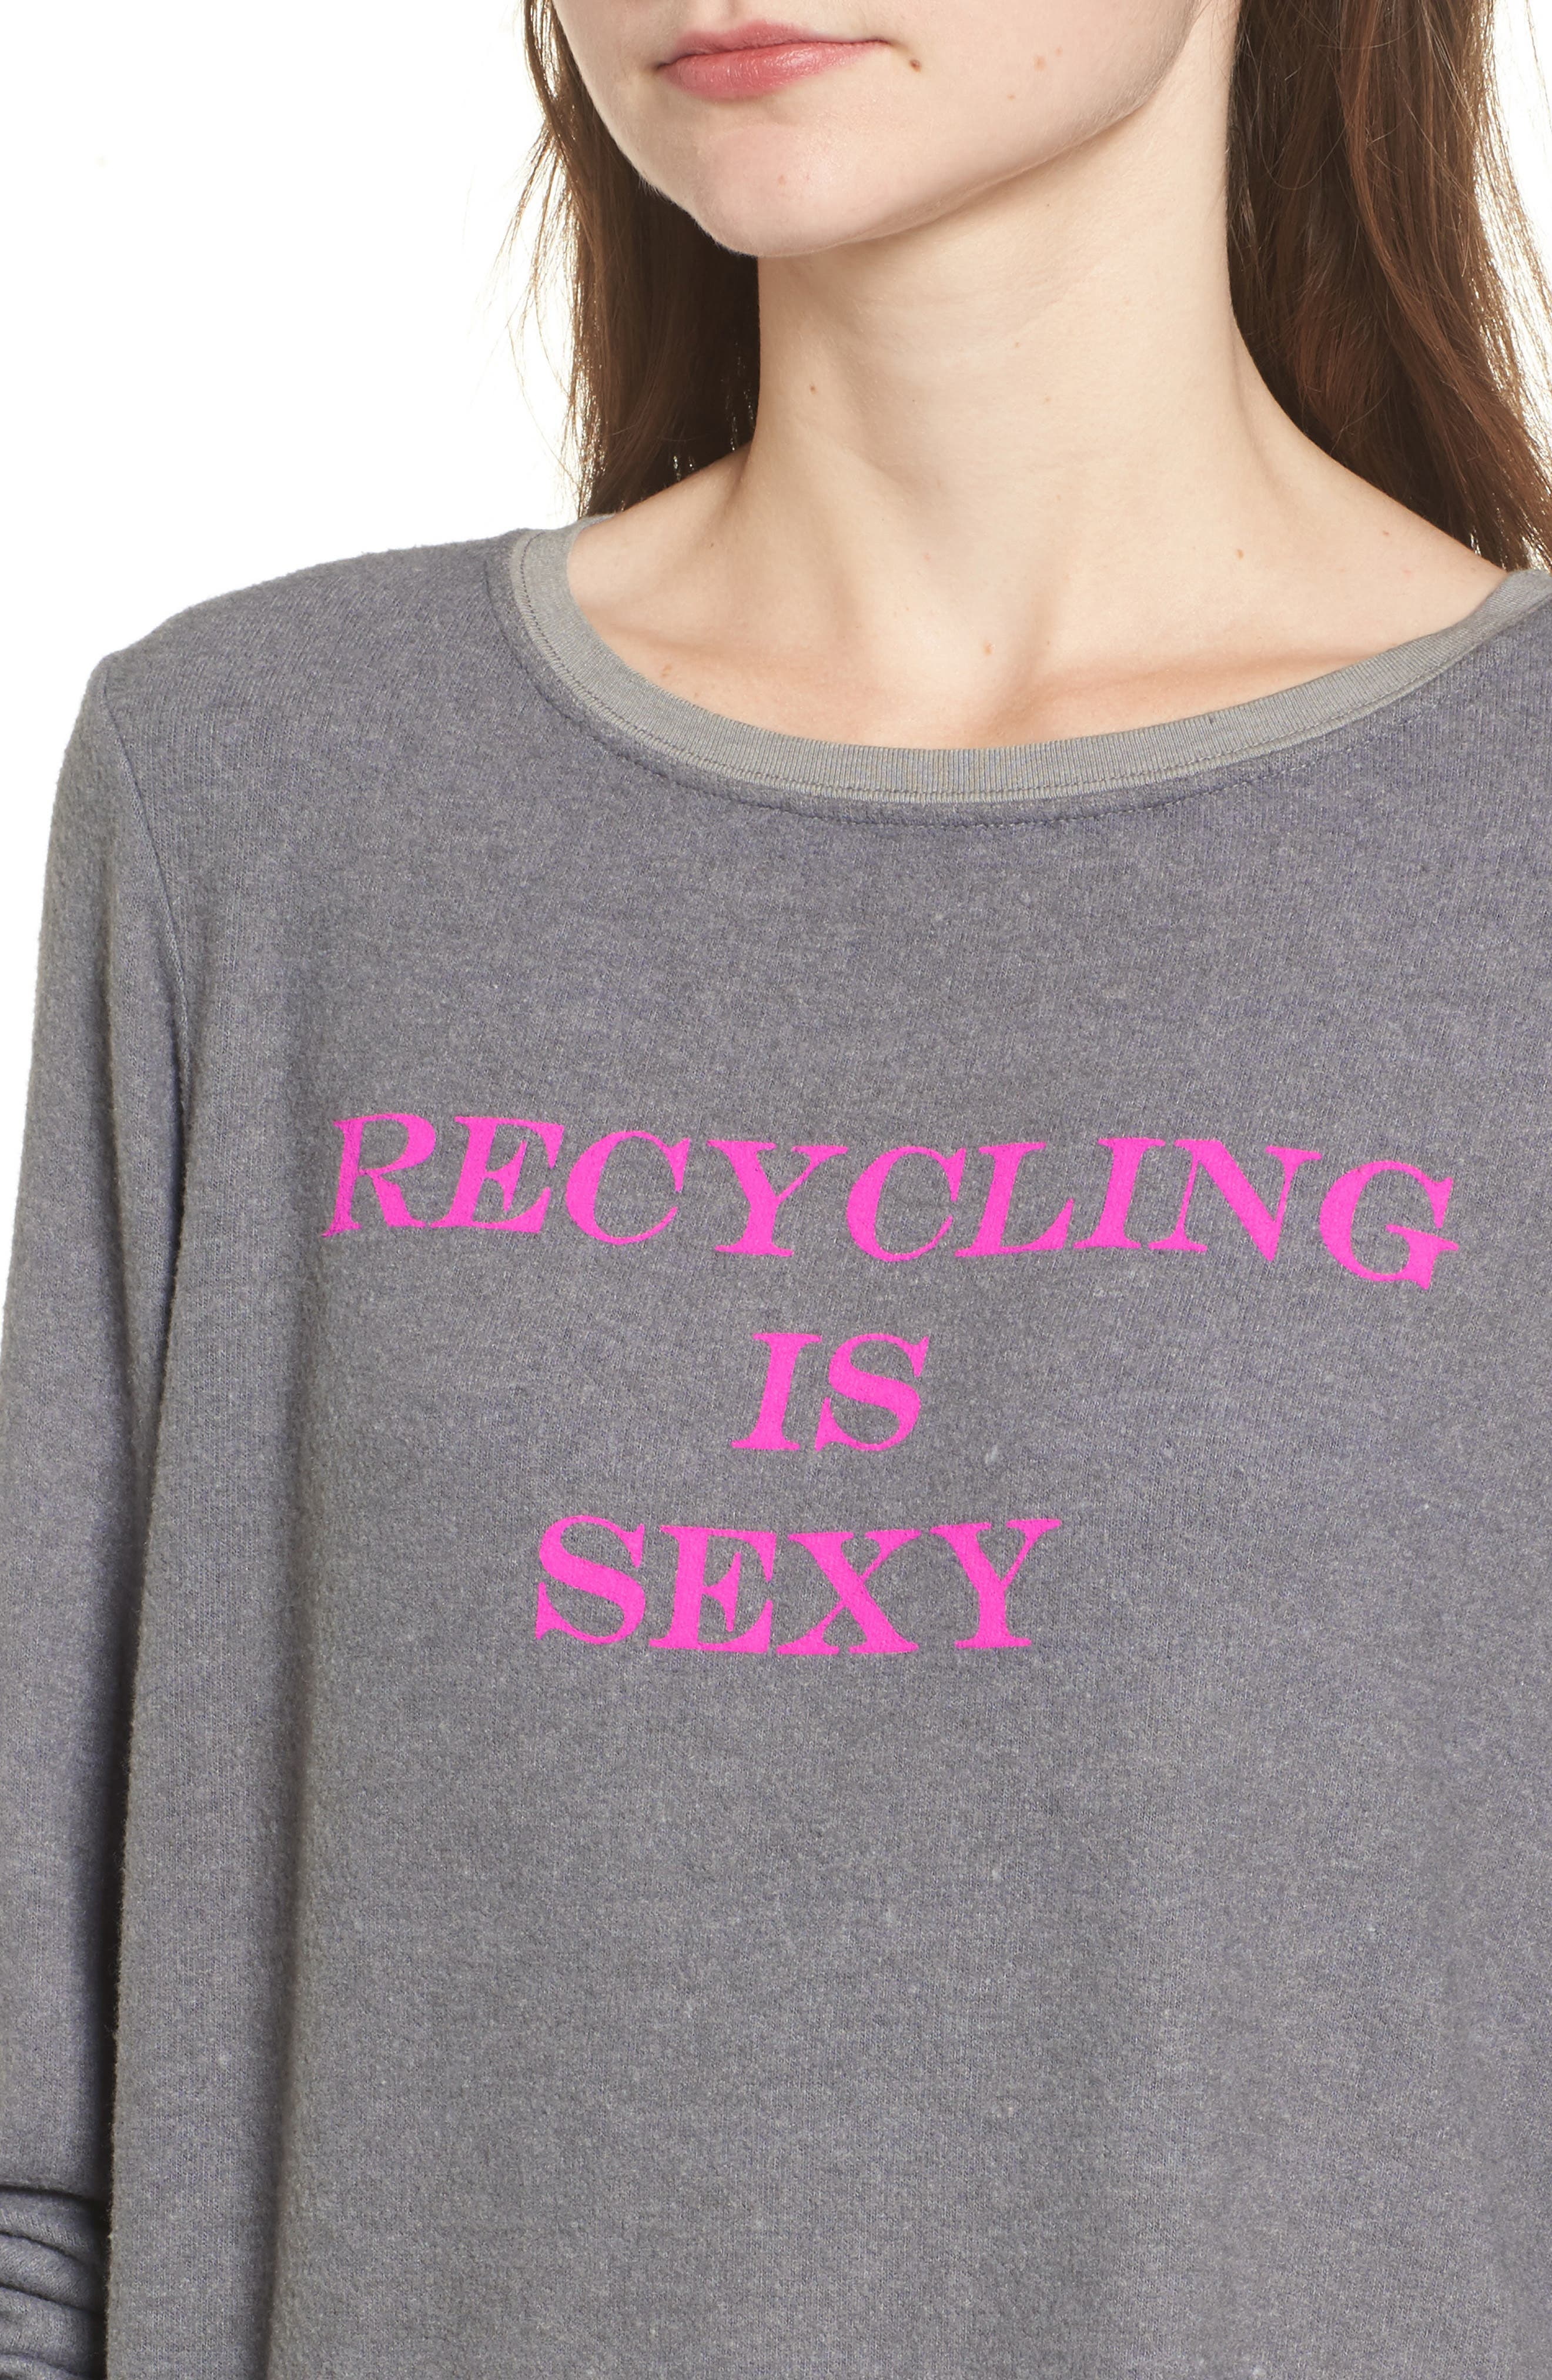 Recycling is Sexy Sweatshirt,                             Alternate thumbnail 4, color,                             Vintage Grey